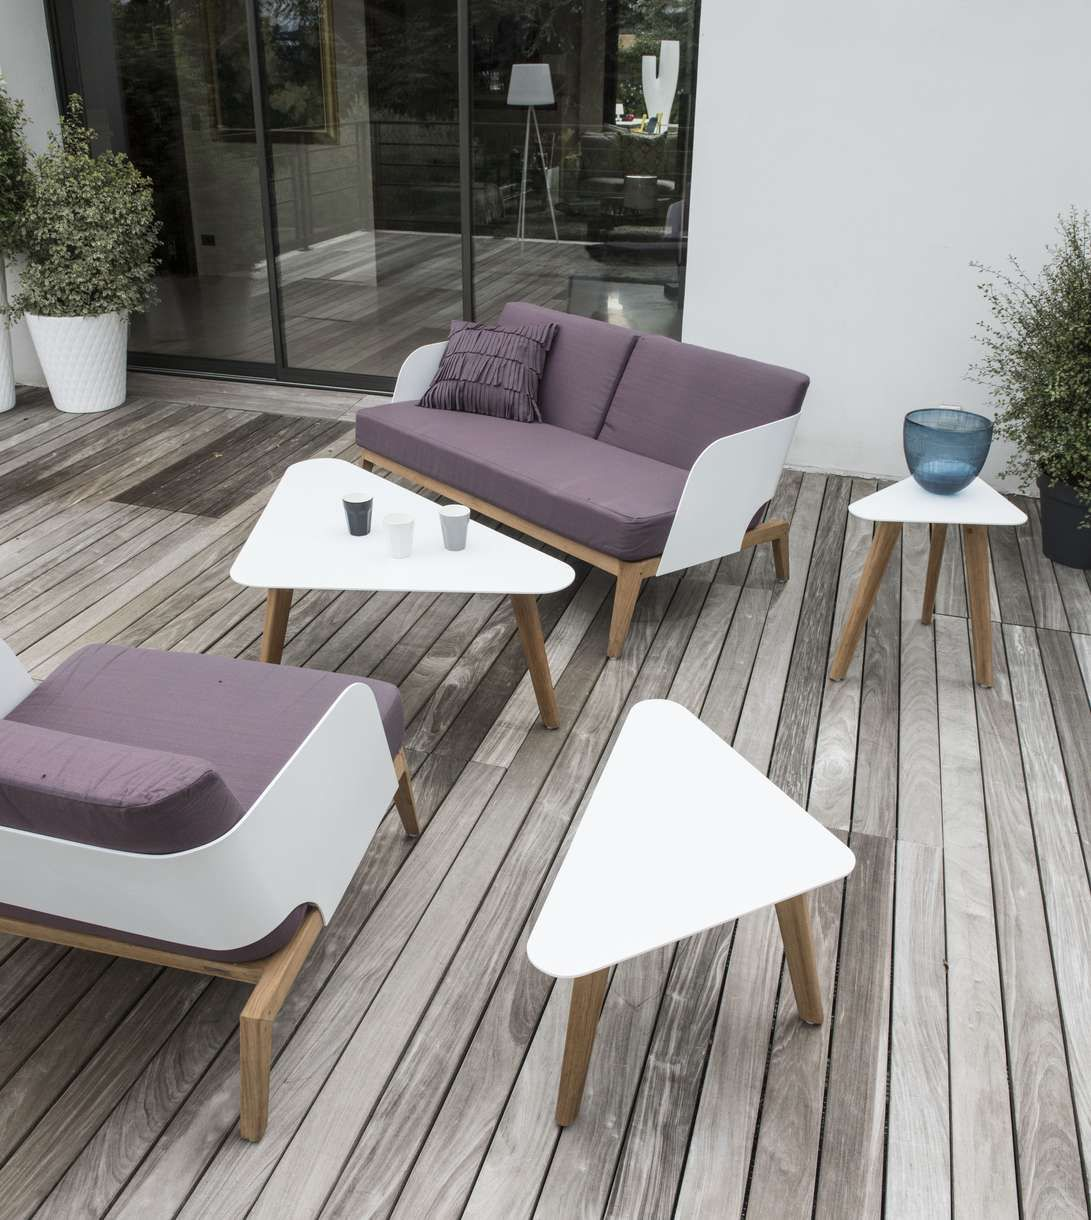 Salon de jardin deco fifties Truffaut | Garden in white | Pinterest ...